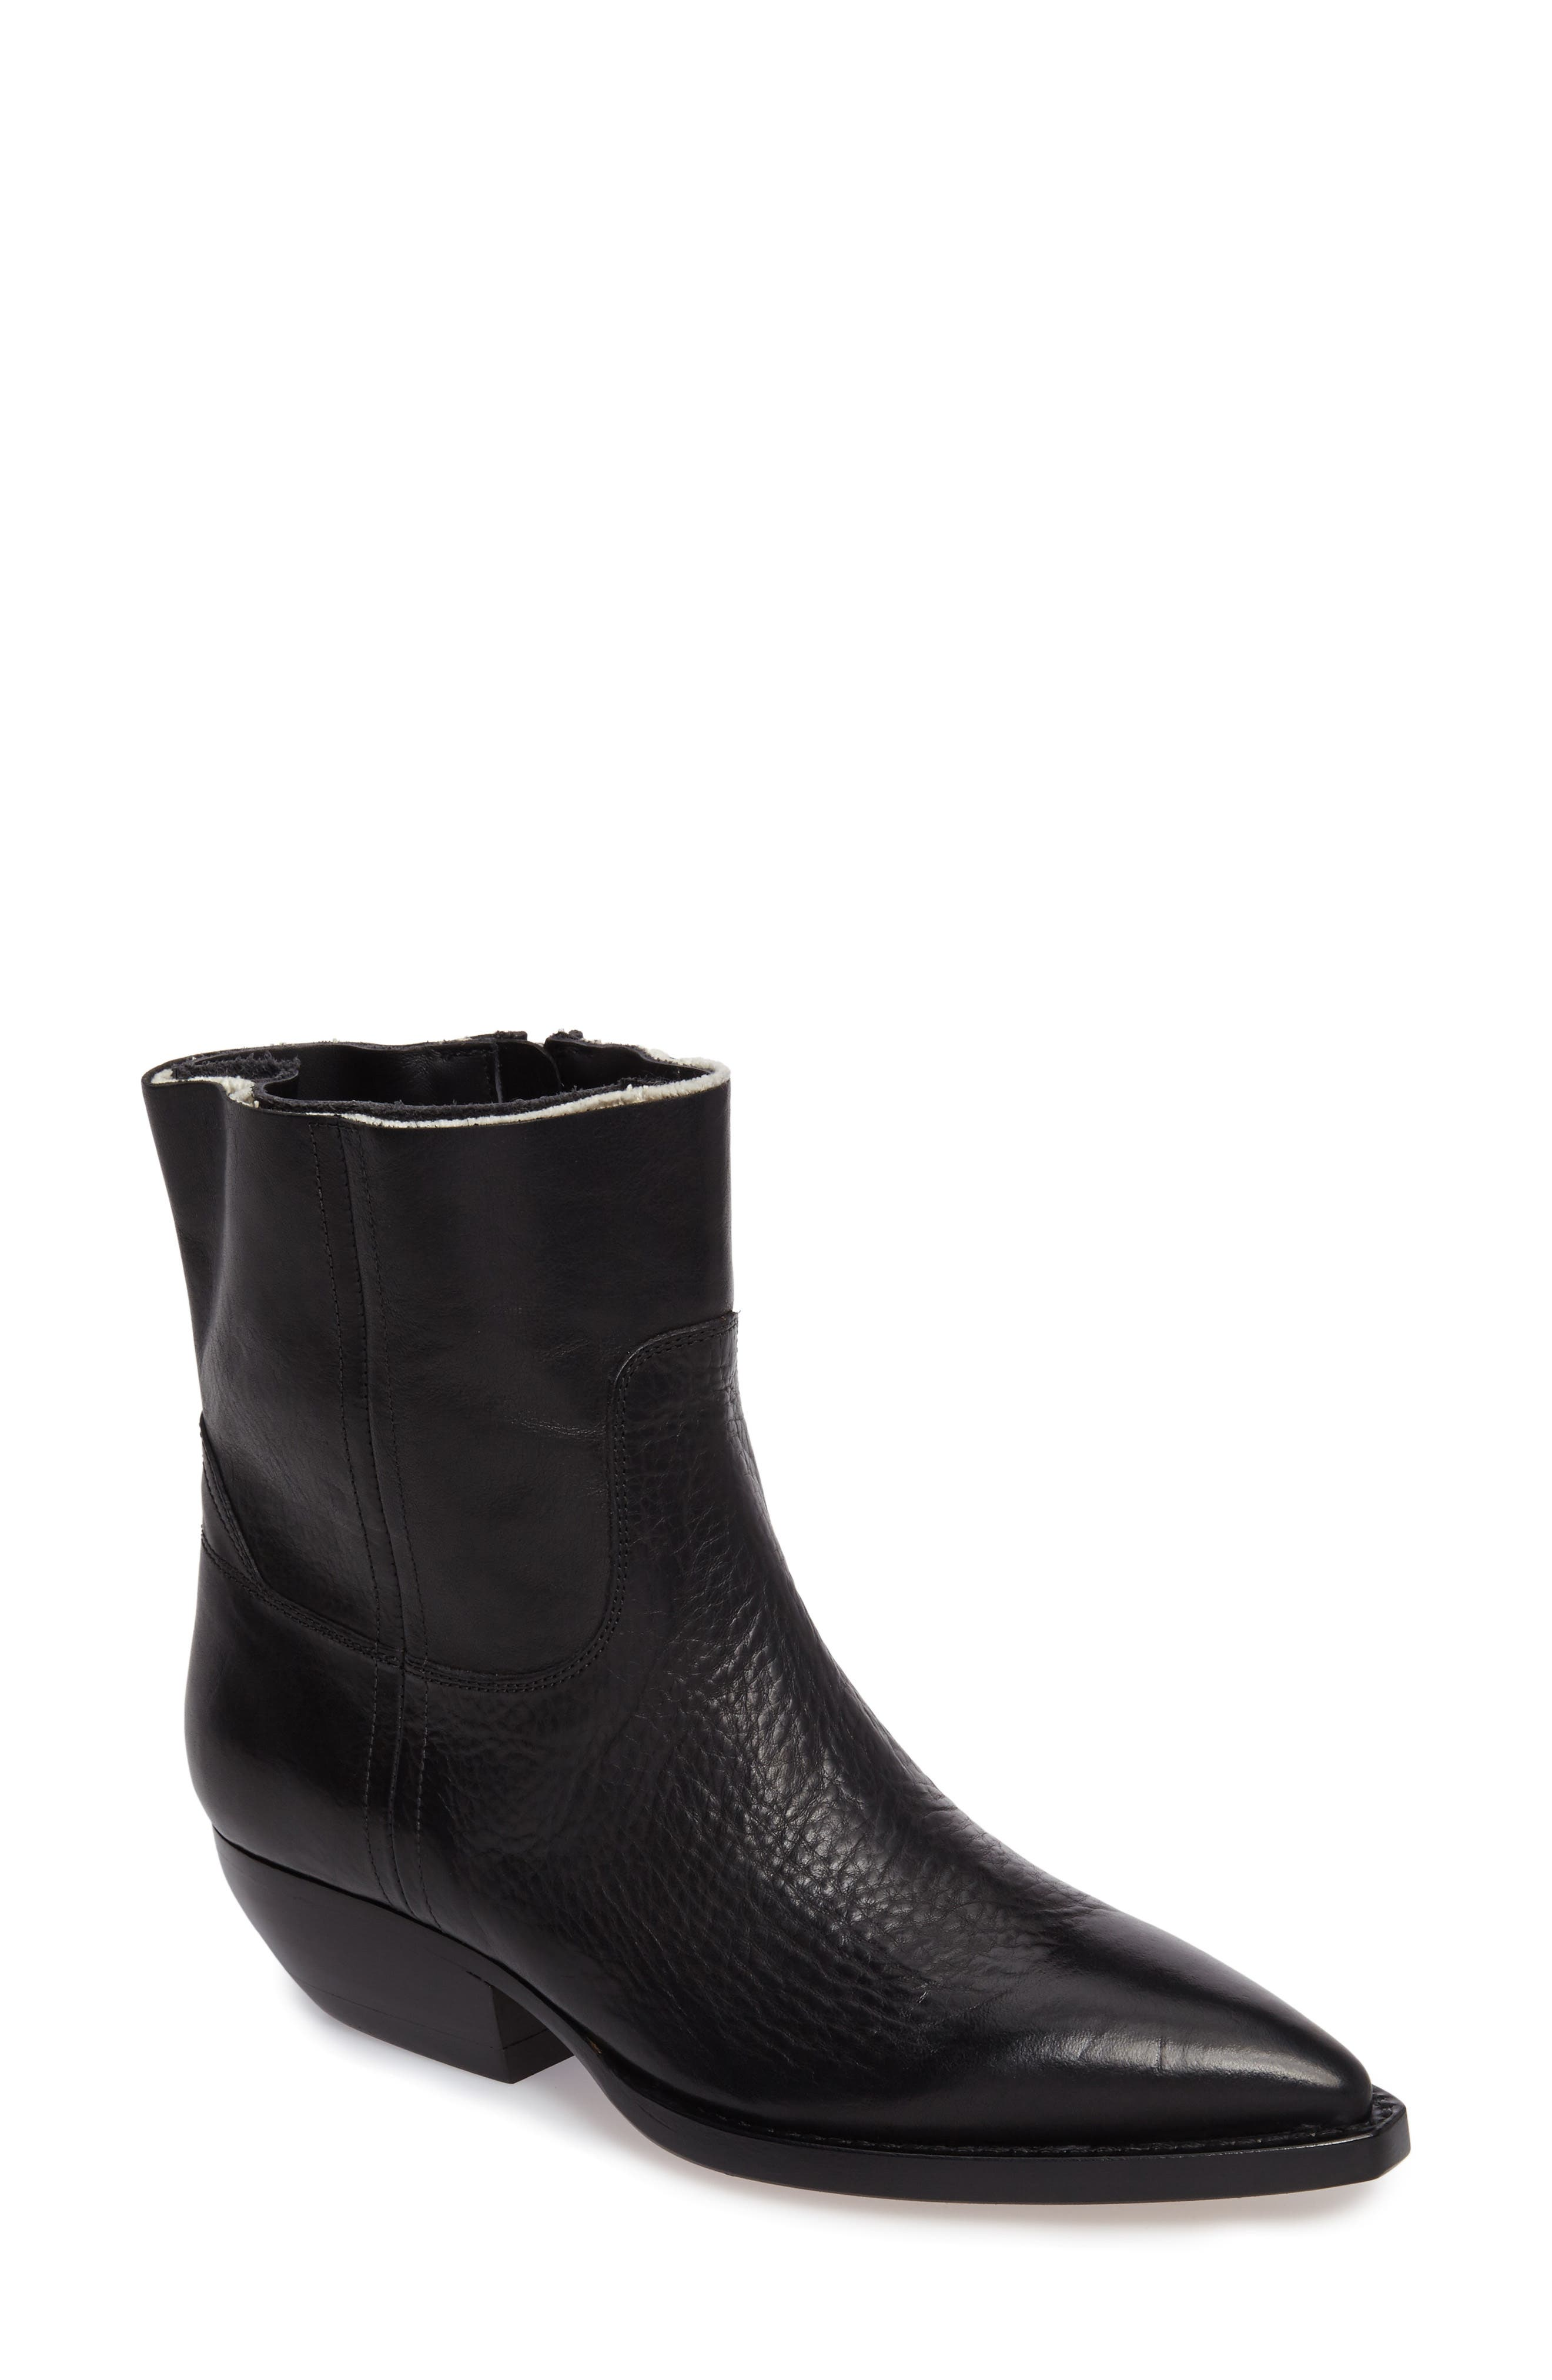 Theo Eli Western Bootie,                             Main thumbnail 1, color,                             001